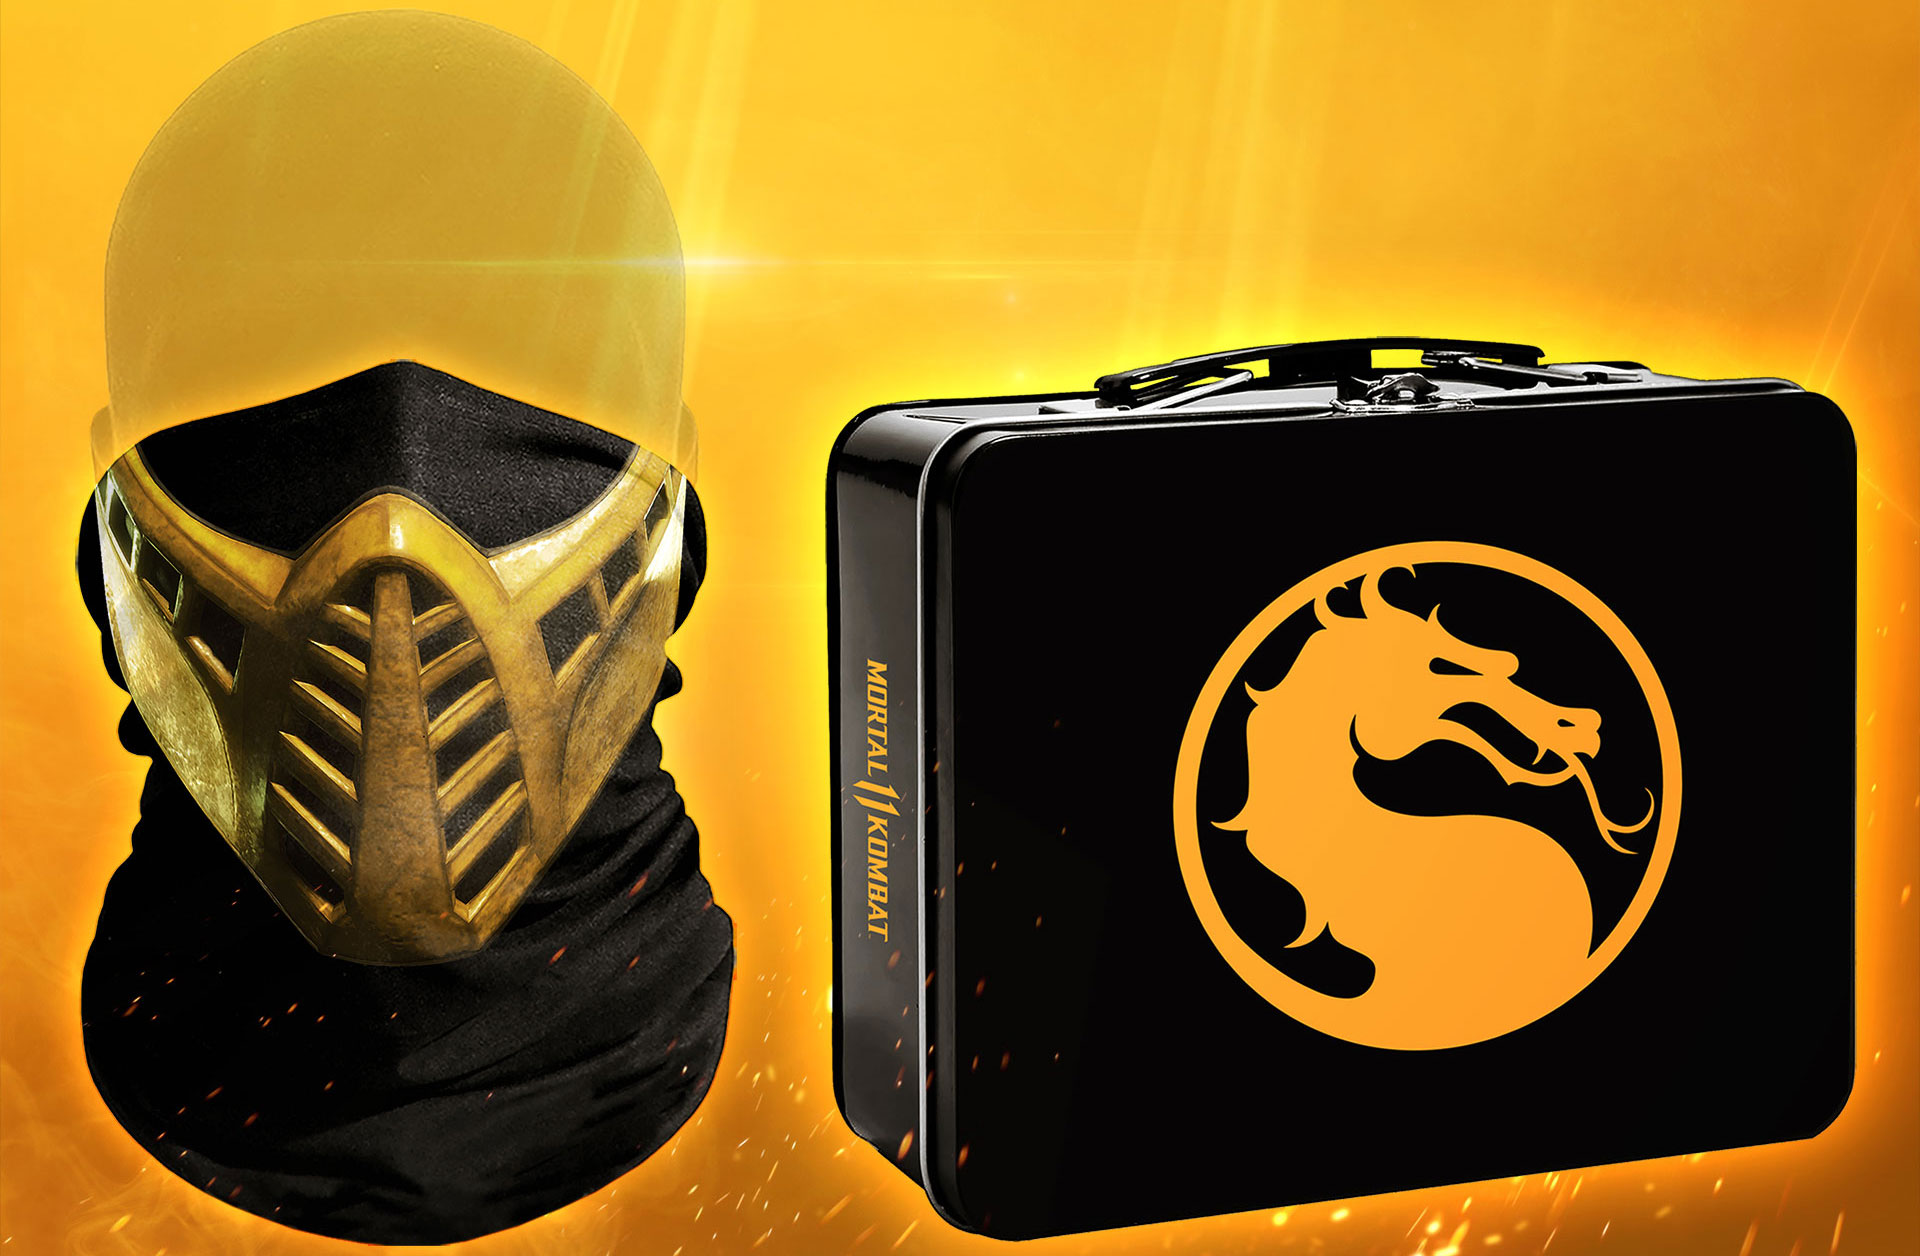 New World Group Scorpion Face mask and custom metal lunchbox for video game promo